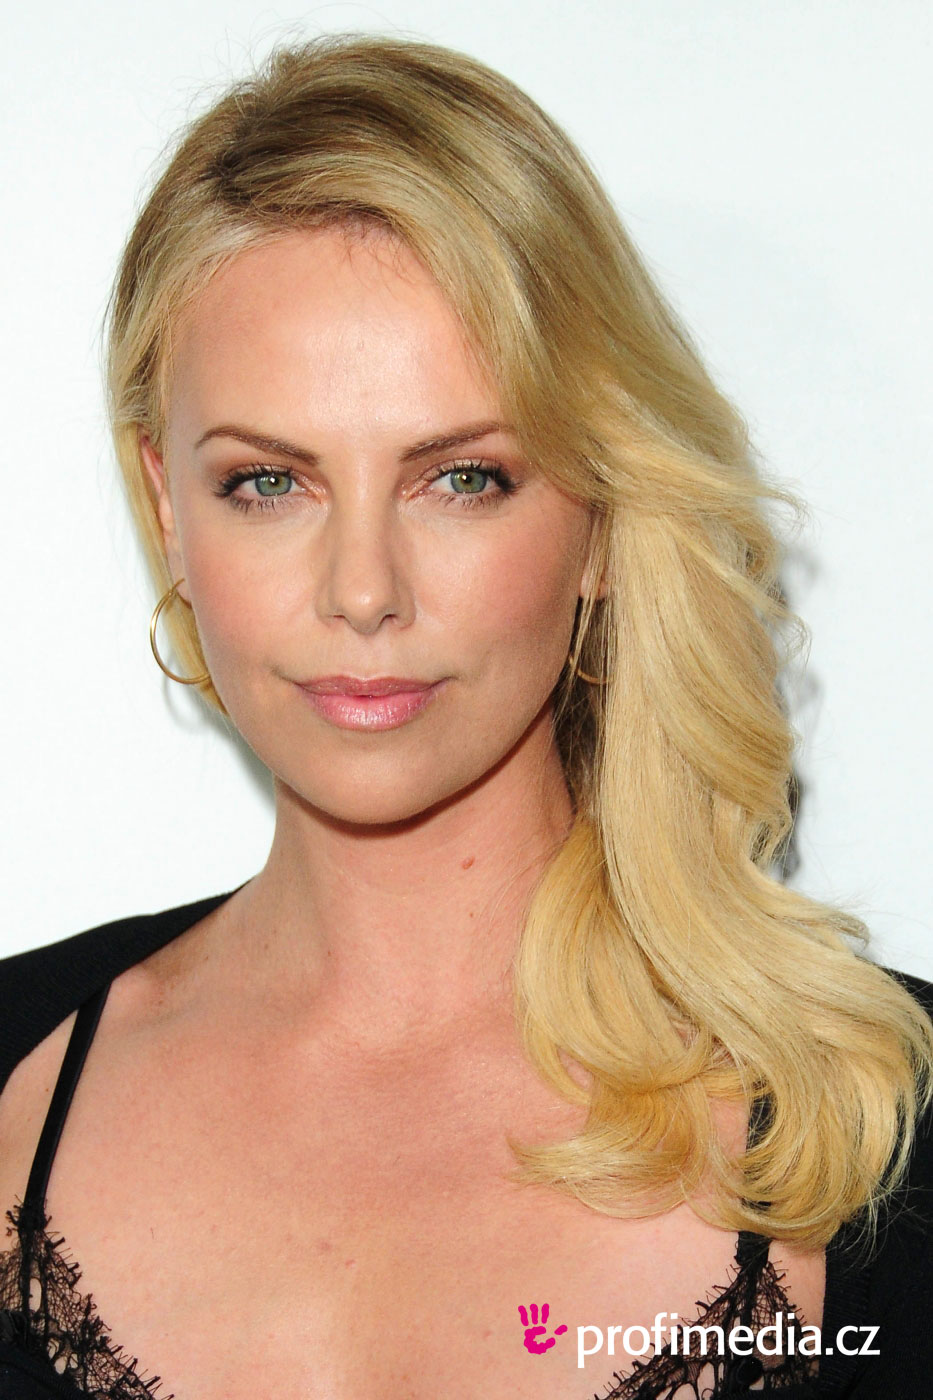 Prom hairstyle - Charlize Theron - Charlize Theron